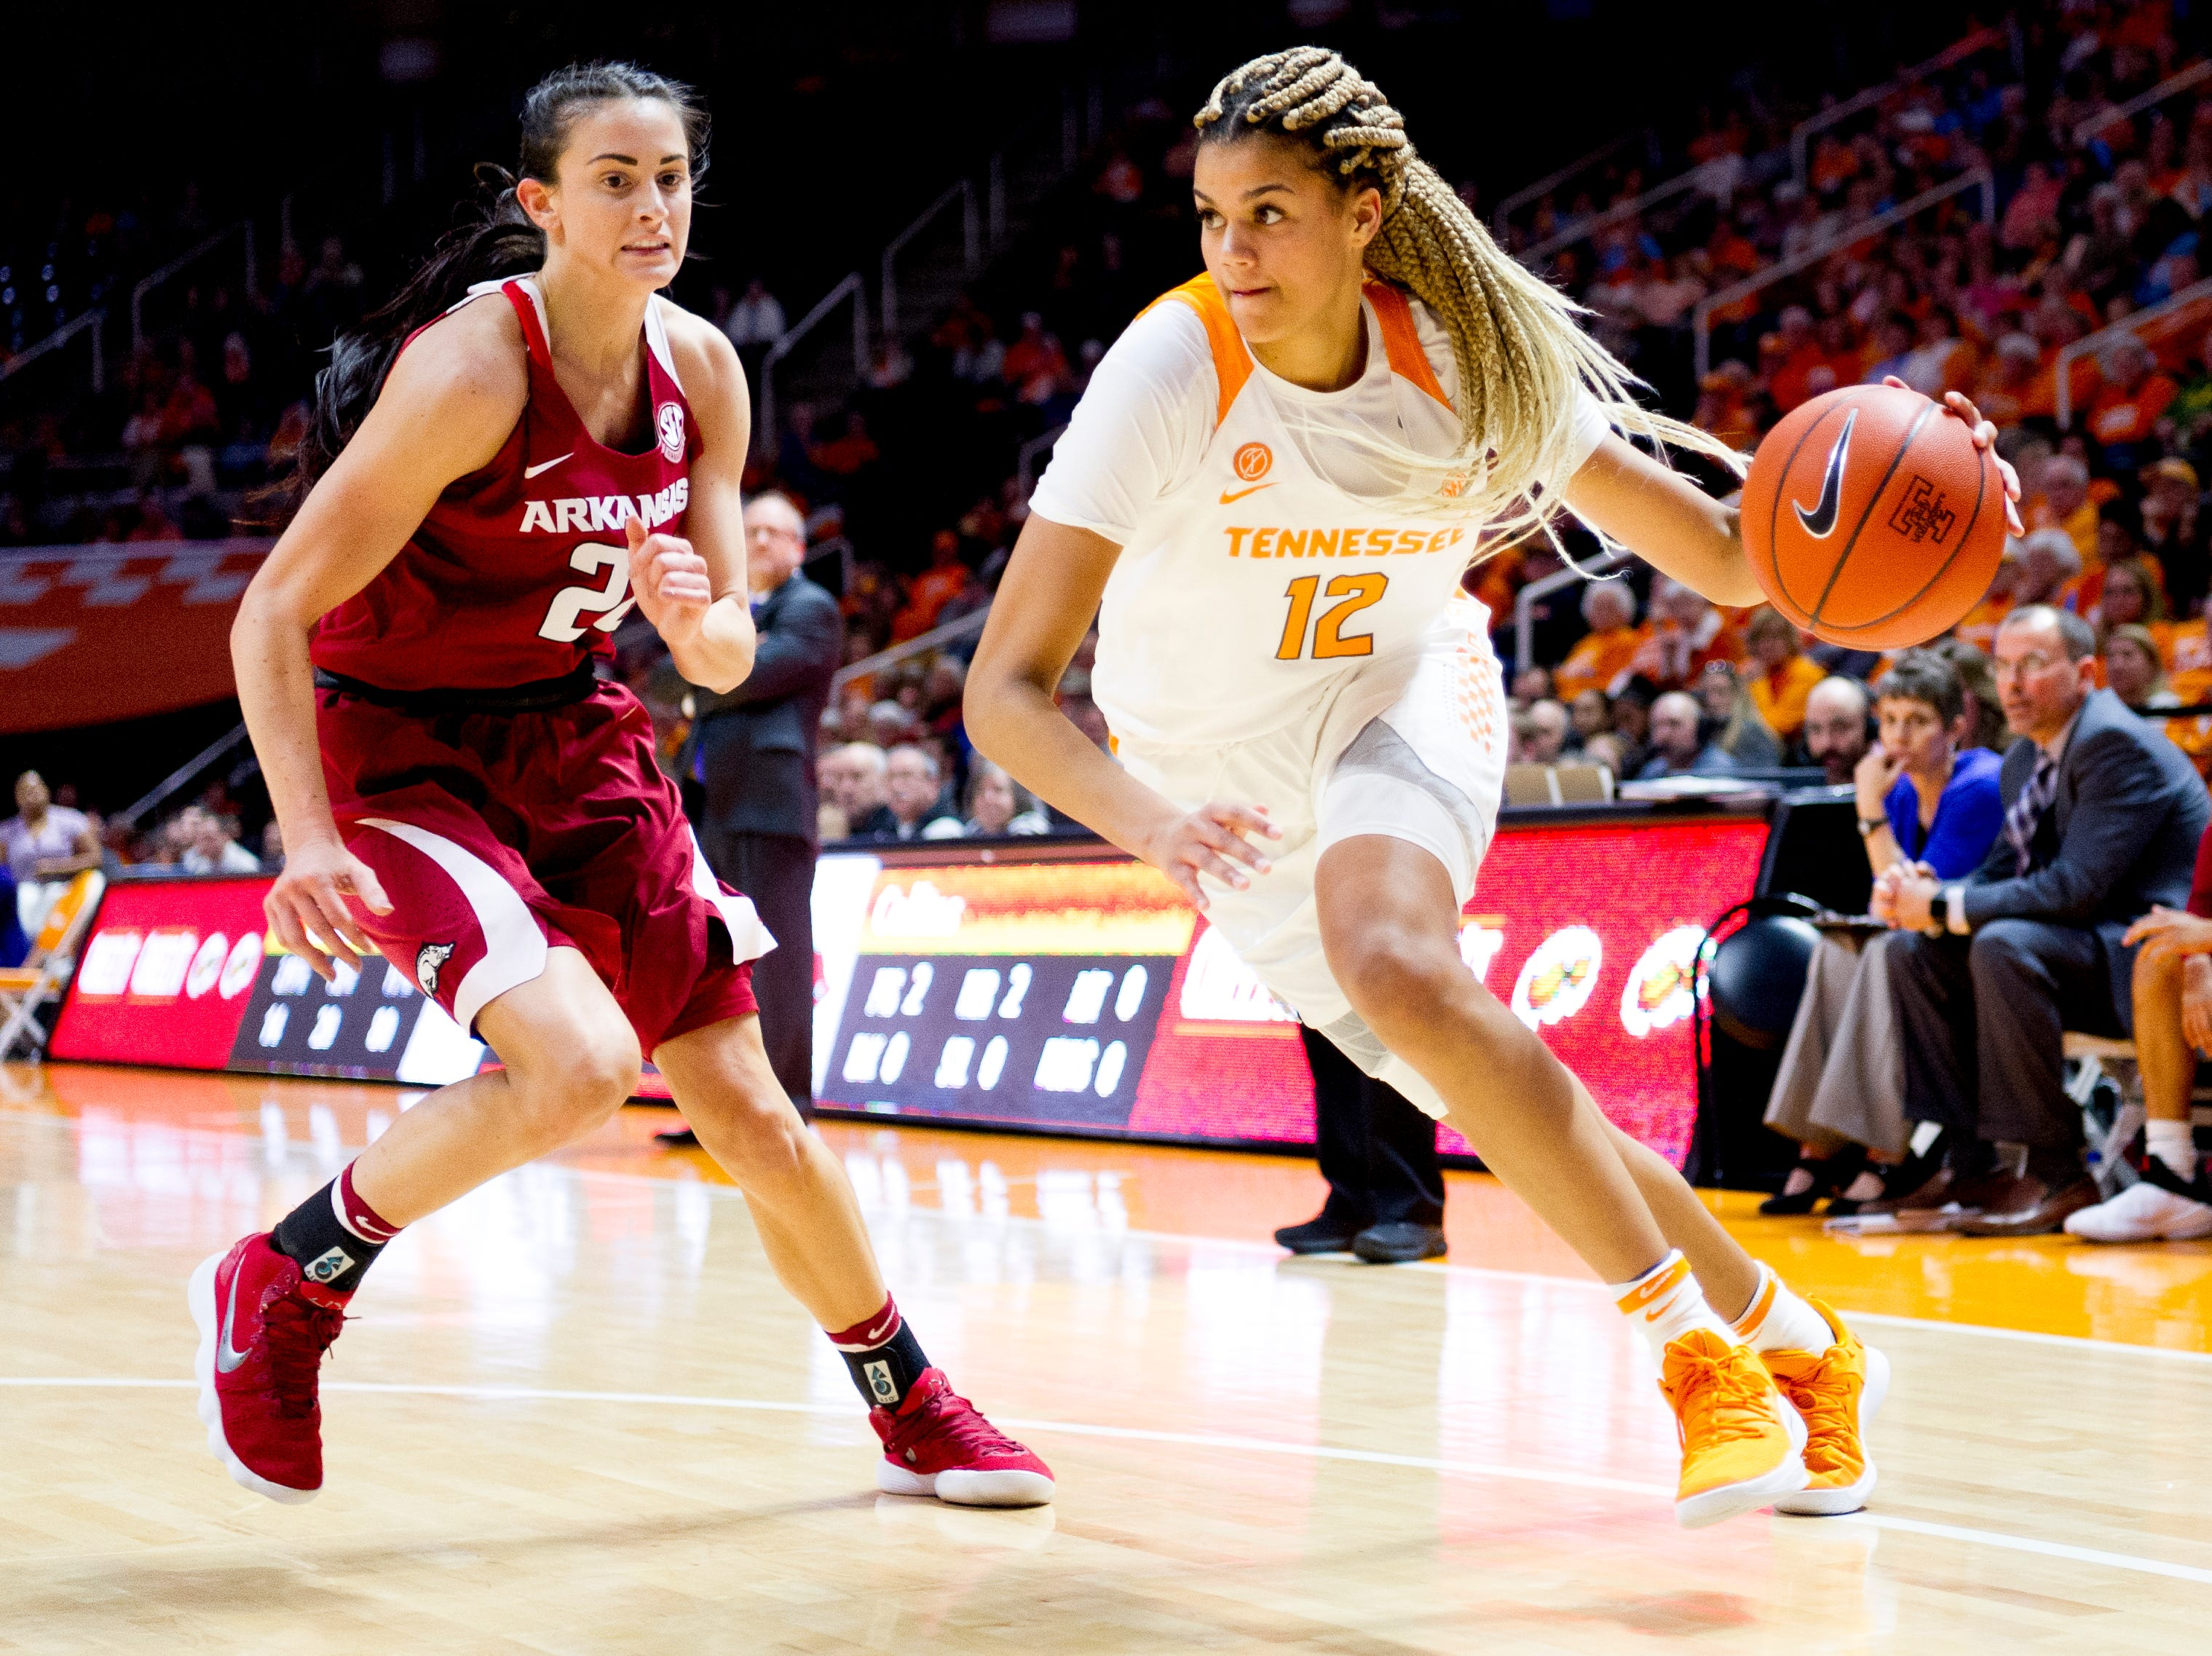 Tennessee guard/forward Rae Burrell (12) dribbles around Arkansas guard/forward Bailey Zimmerman (22) during a game between Tennessee and Arkansas at Thompson-Boling Arena in Knoxville, Tennessee on Monday, January 21, 2019.